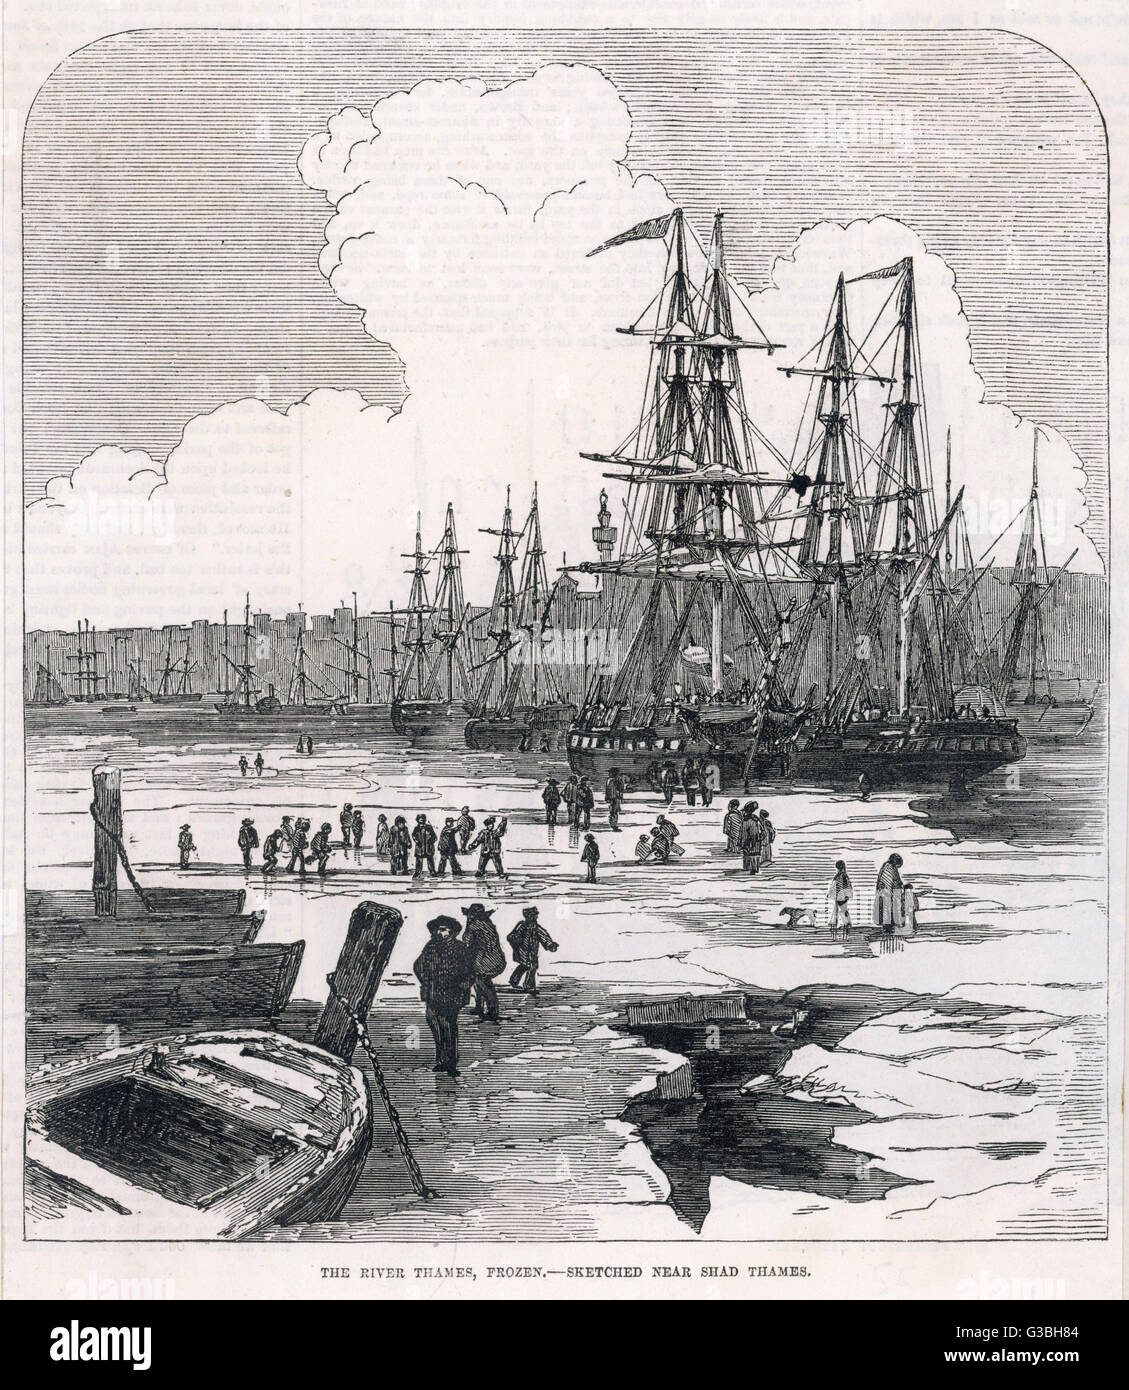 Sailing vessels locked in the  frozen river at Shad Thames.        Date: 1855 - Stock Image